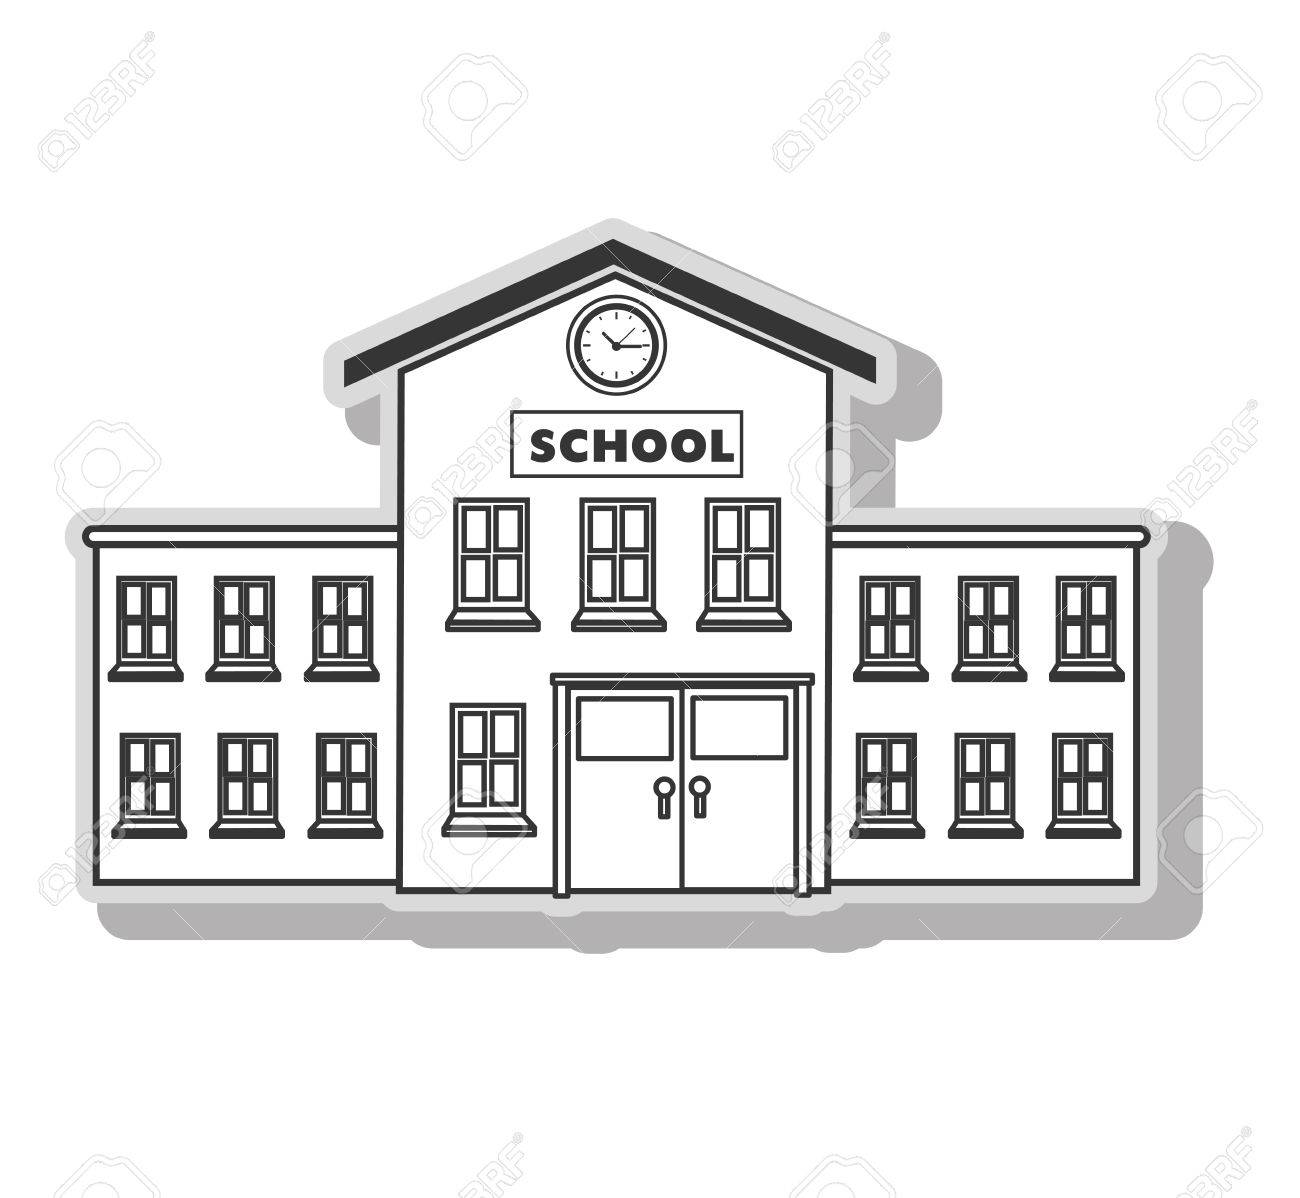 School building architecture in black and white colors, isolated...